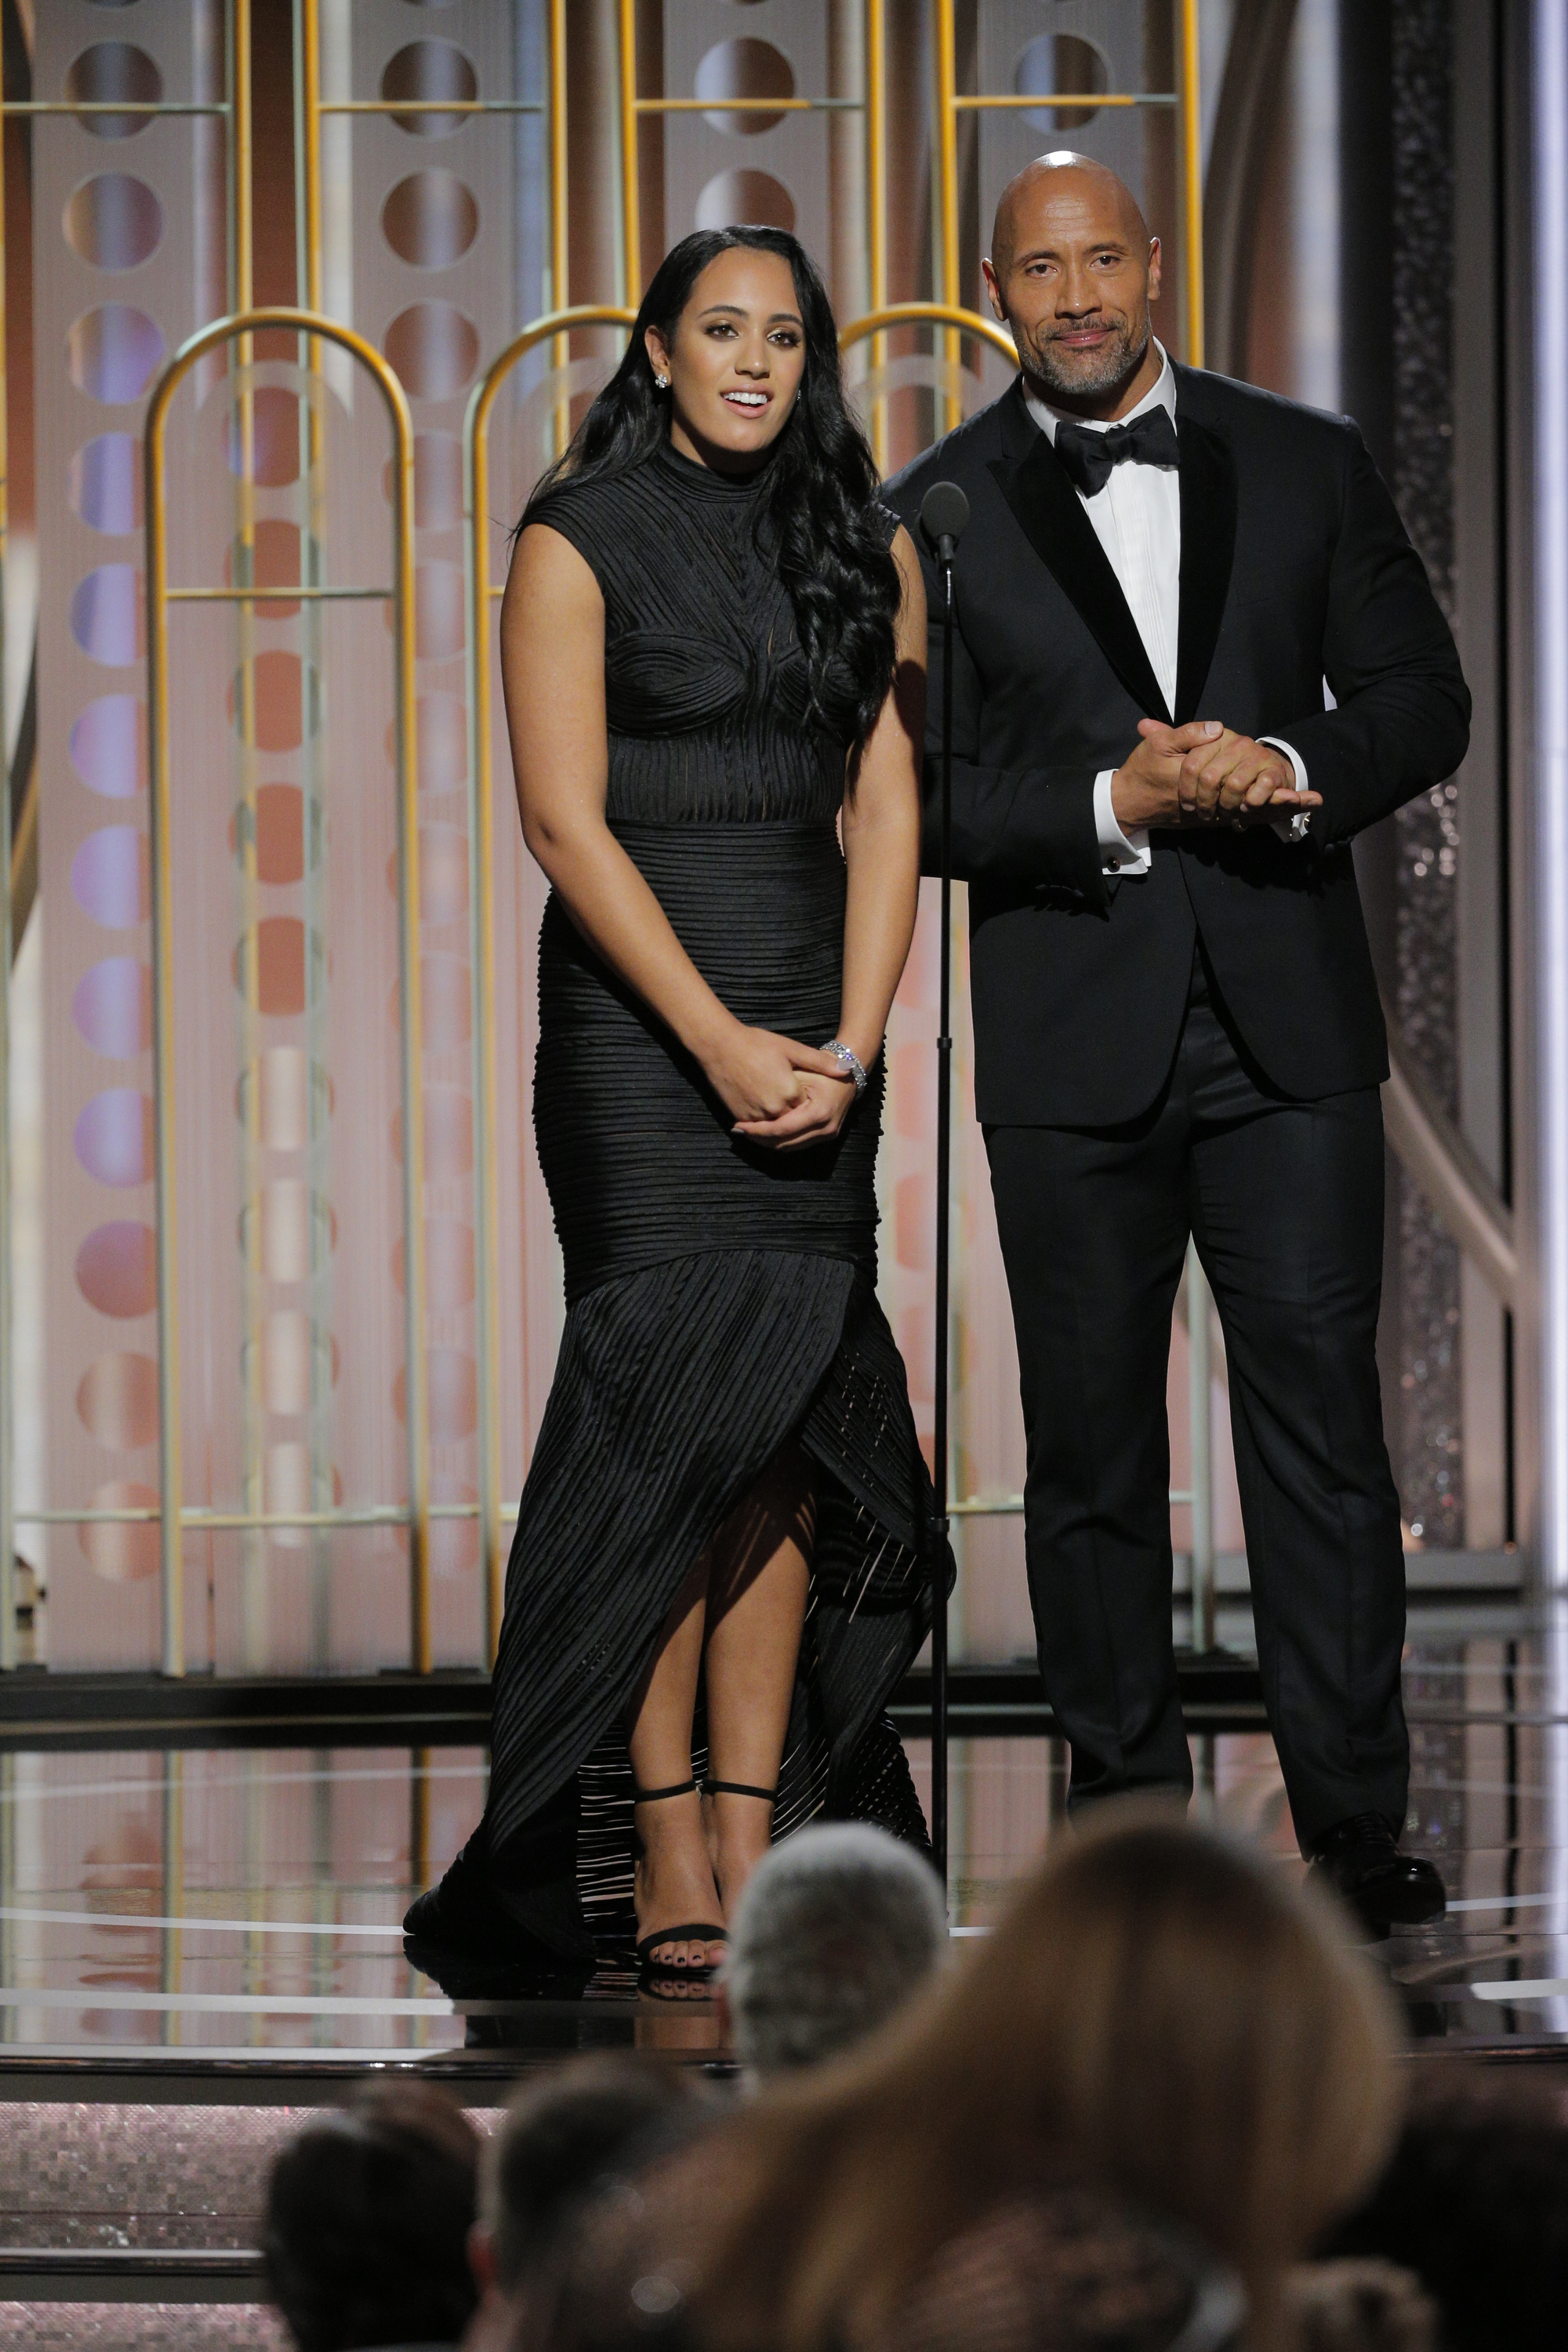 Golden Globe Ambassador  Simone Garcia Johnson and her father, Dwayne Johnson, speak onstage during the 75th Annual Golden Globe Awards at the Beverly Hilton hotel in Beverly Hills on Jan. 7, 2018.